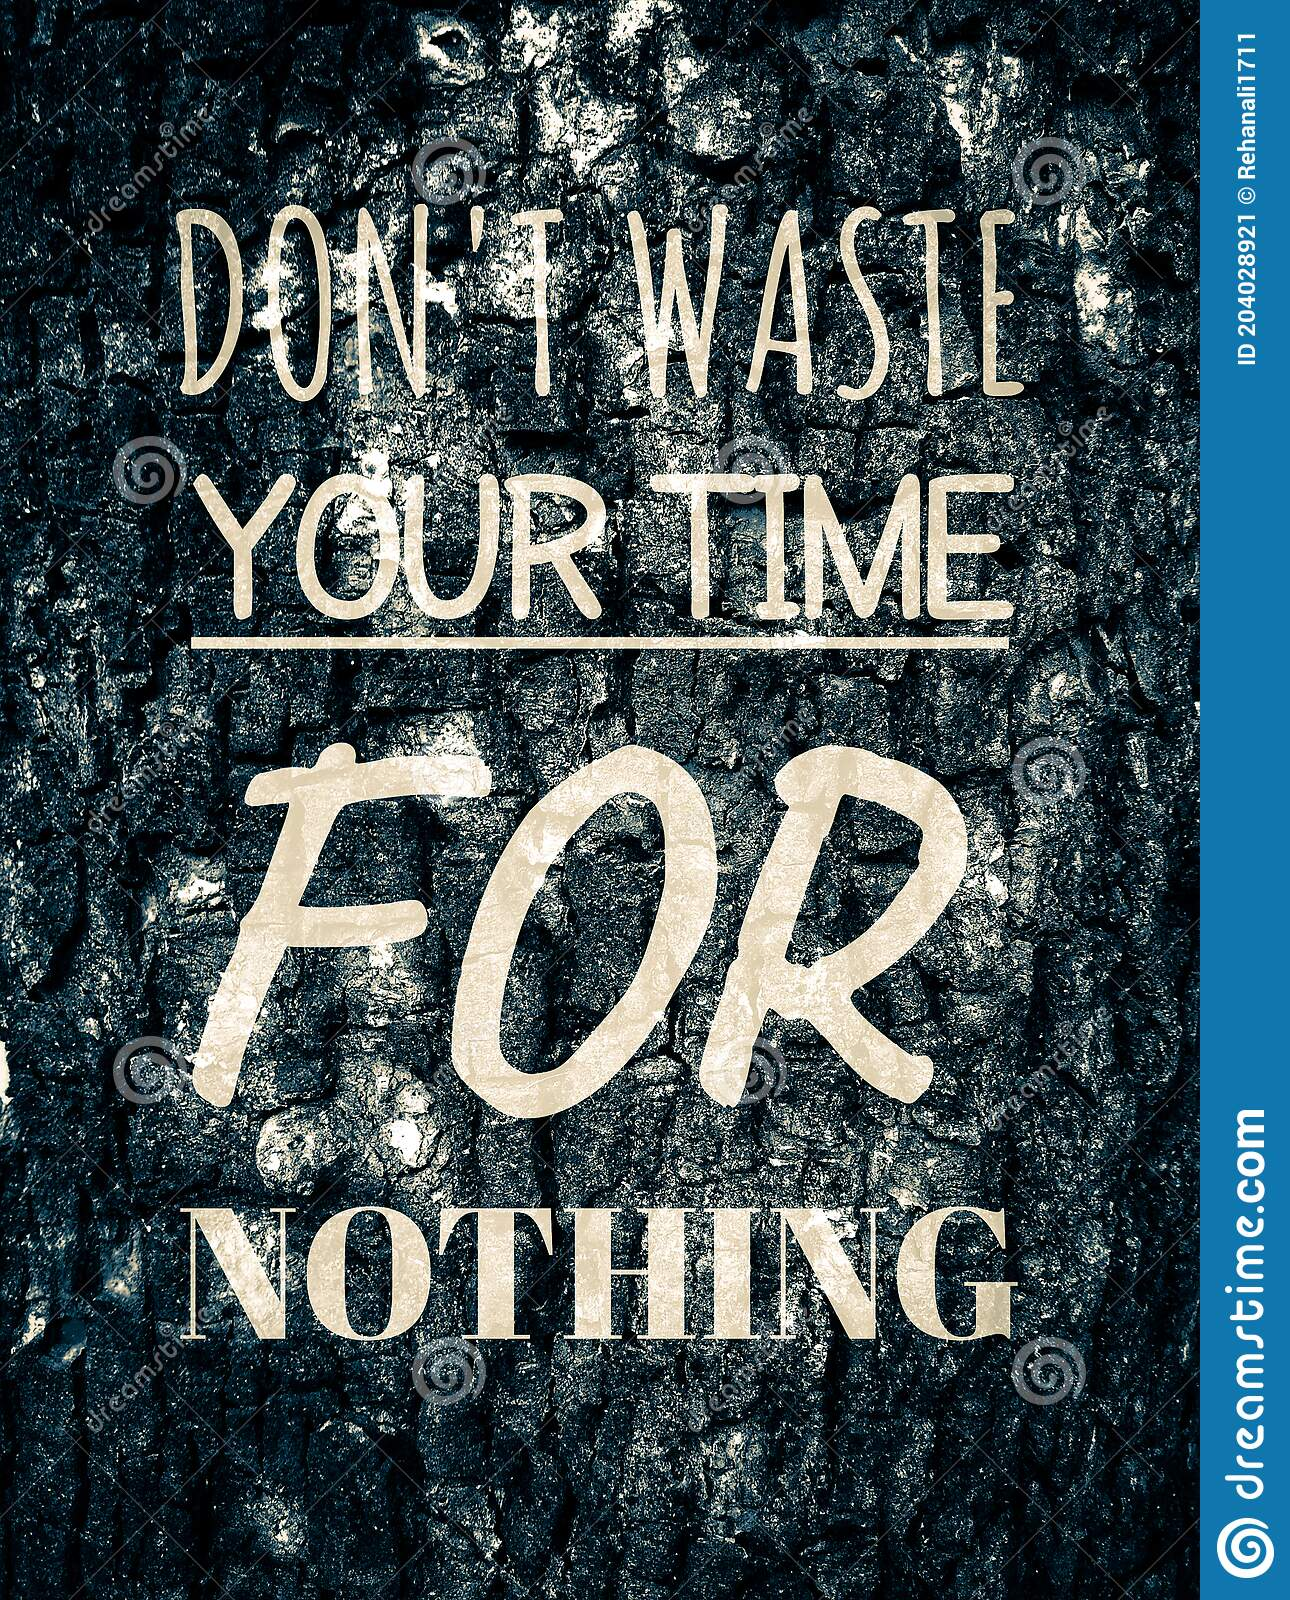 Don T Waste Time Photos - Free & Royalty-Free Stock Photos from Dreamstime